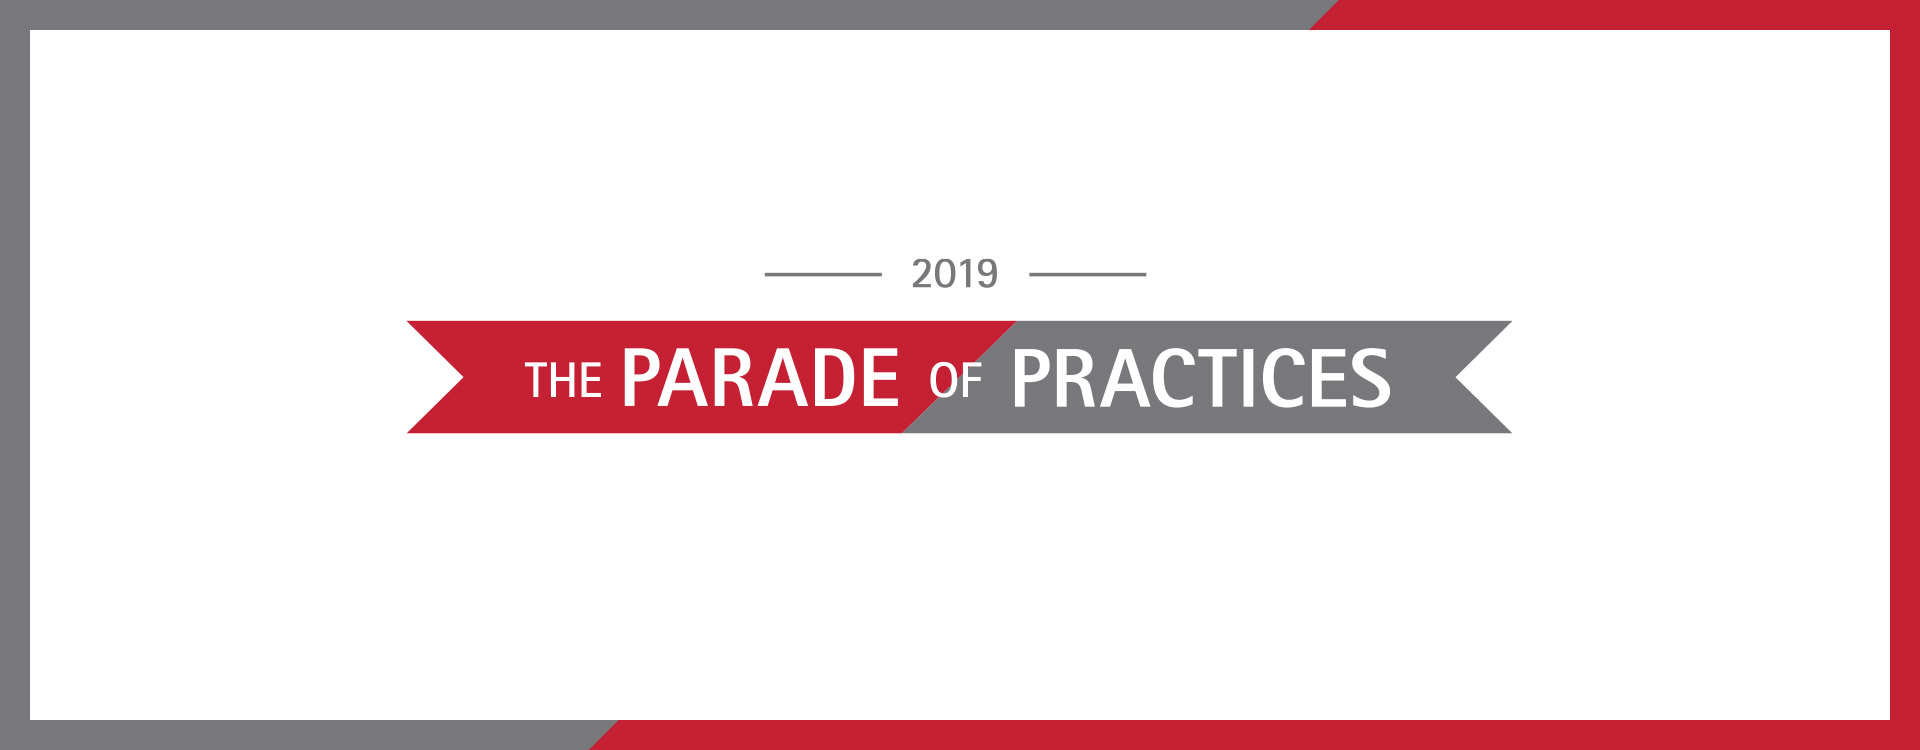 2019-Parade-of-Practices-Event-Banner.jpg